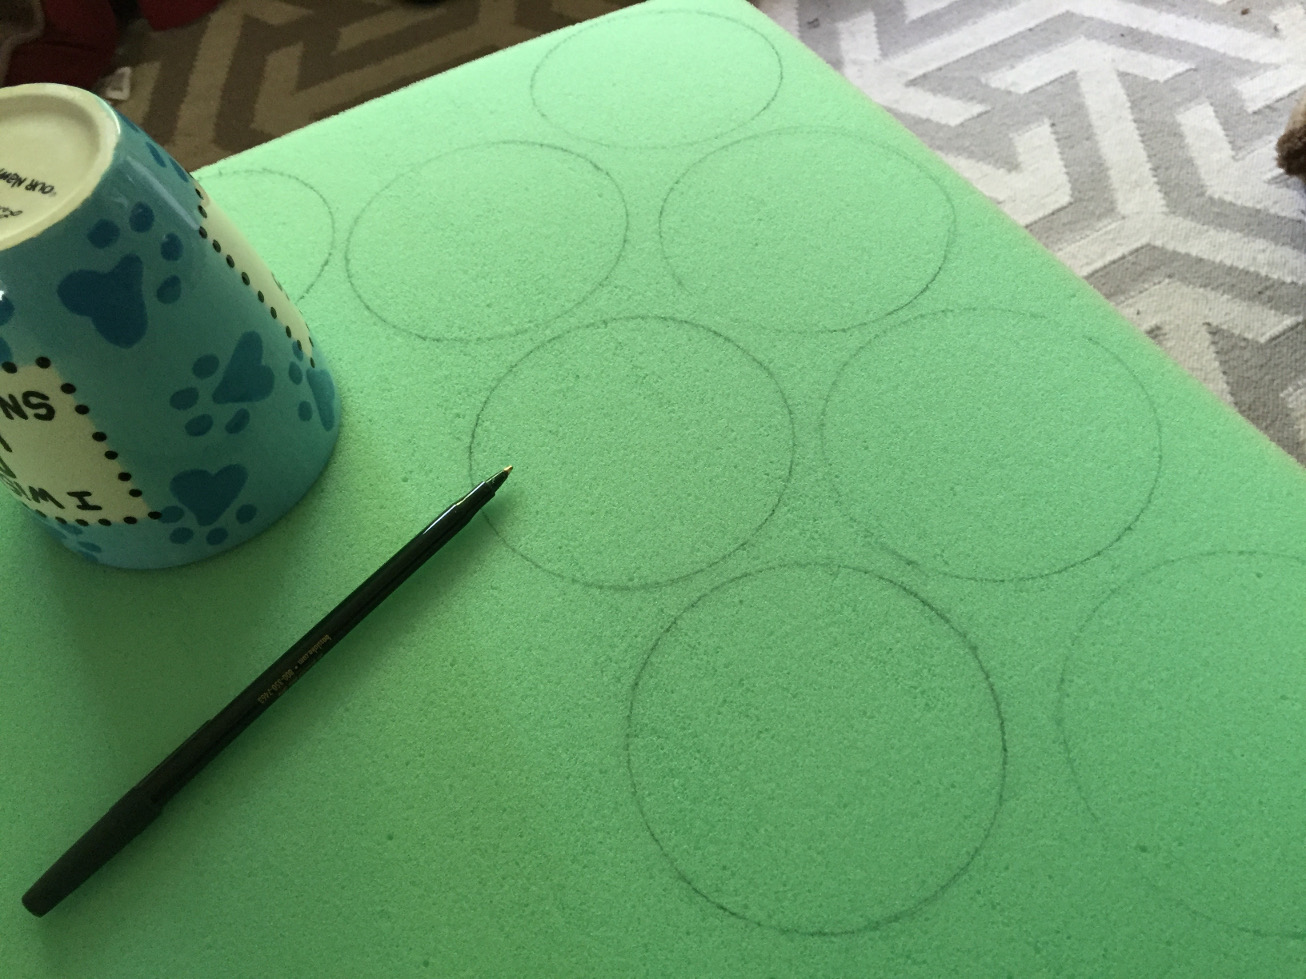 Tracing circles on foam